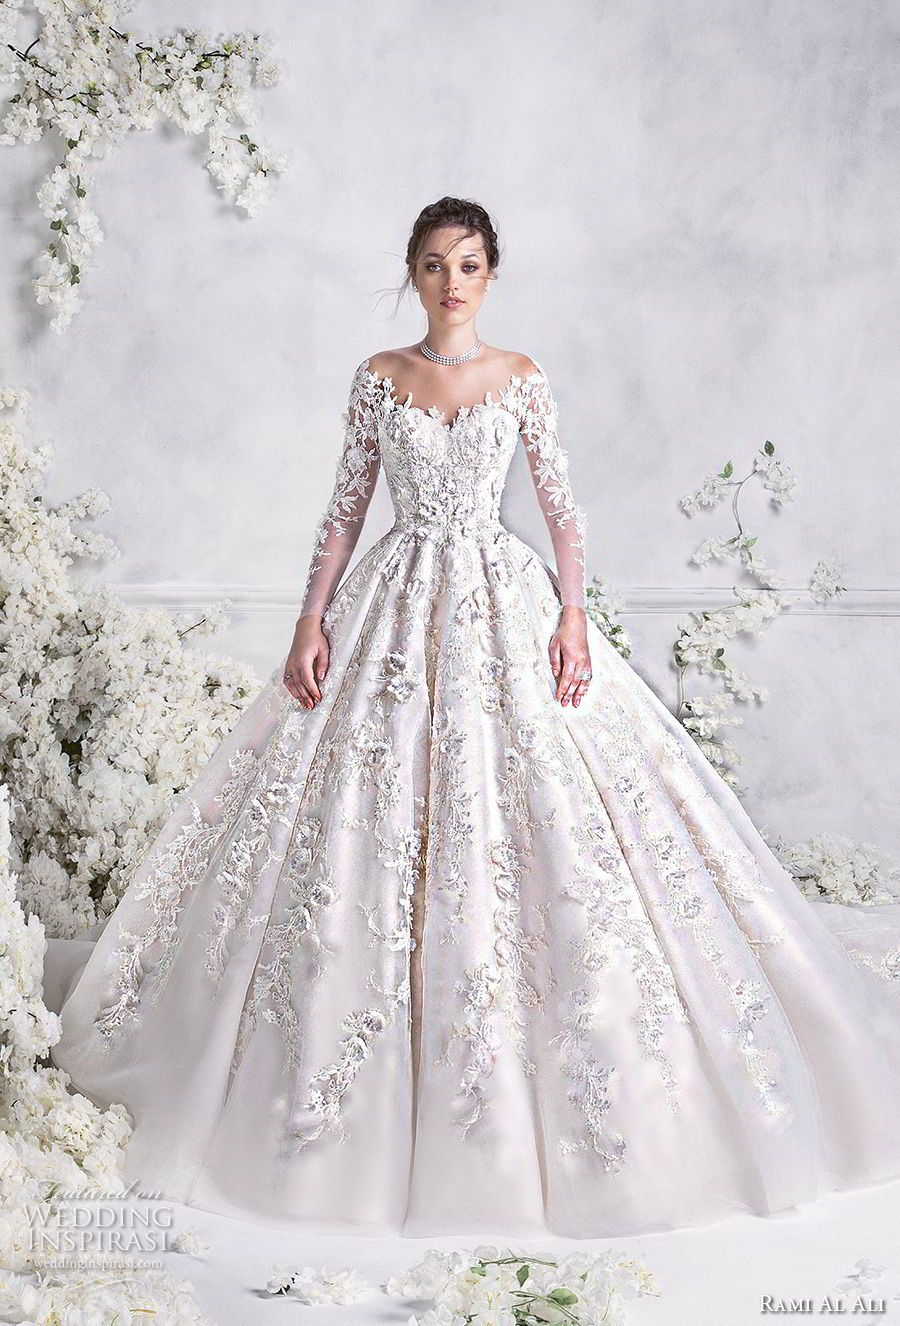 Rami al ali wedding dresses ball gowns neckline and wedding